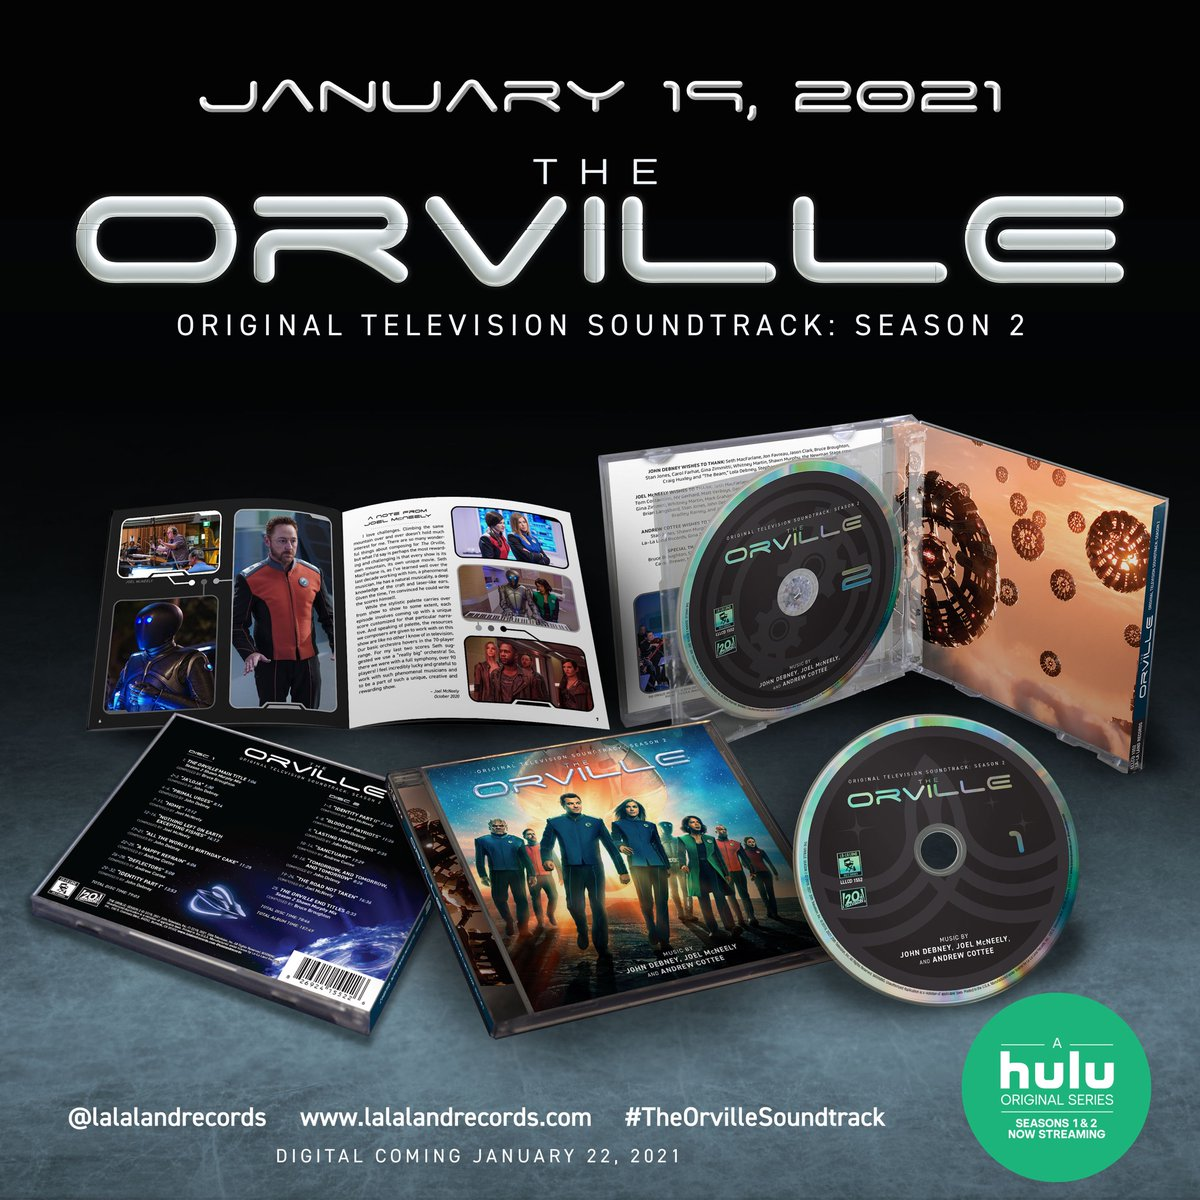 #TheOrville Season 2 soundtrack is coming — featuring a sparkling 90-piece orchestra, and the compositional talents of Joel McNeely, John Debney, Andrew Cottee, and Bruce Broughton!